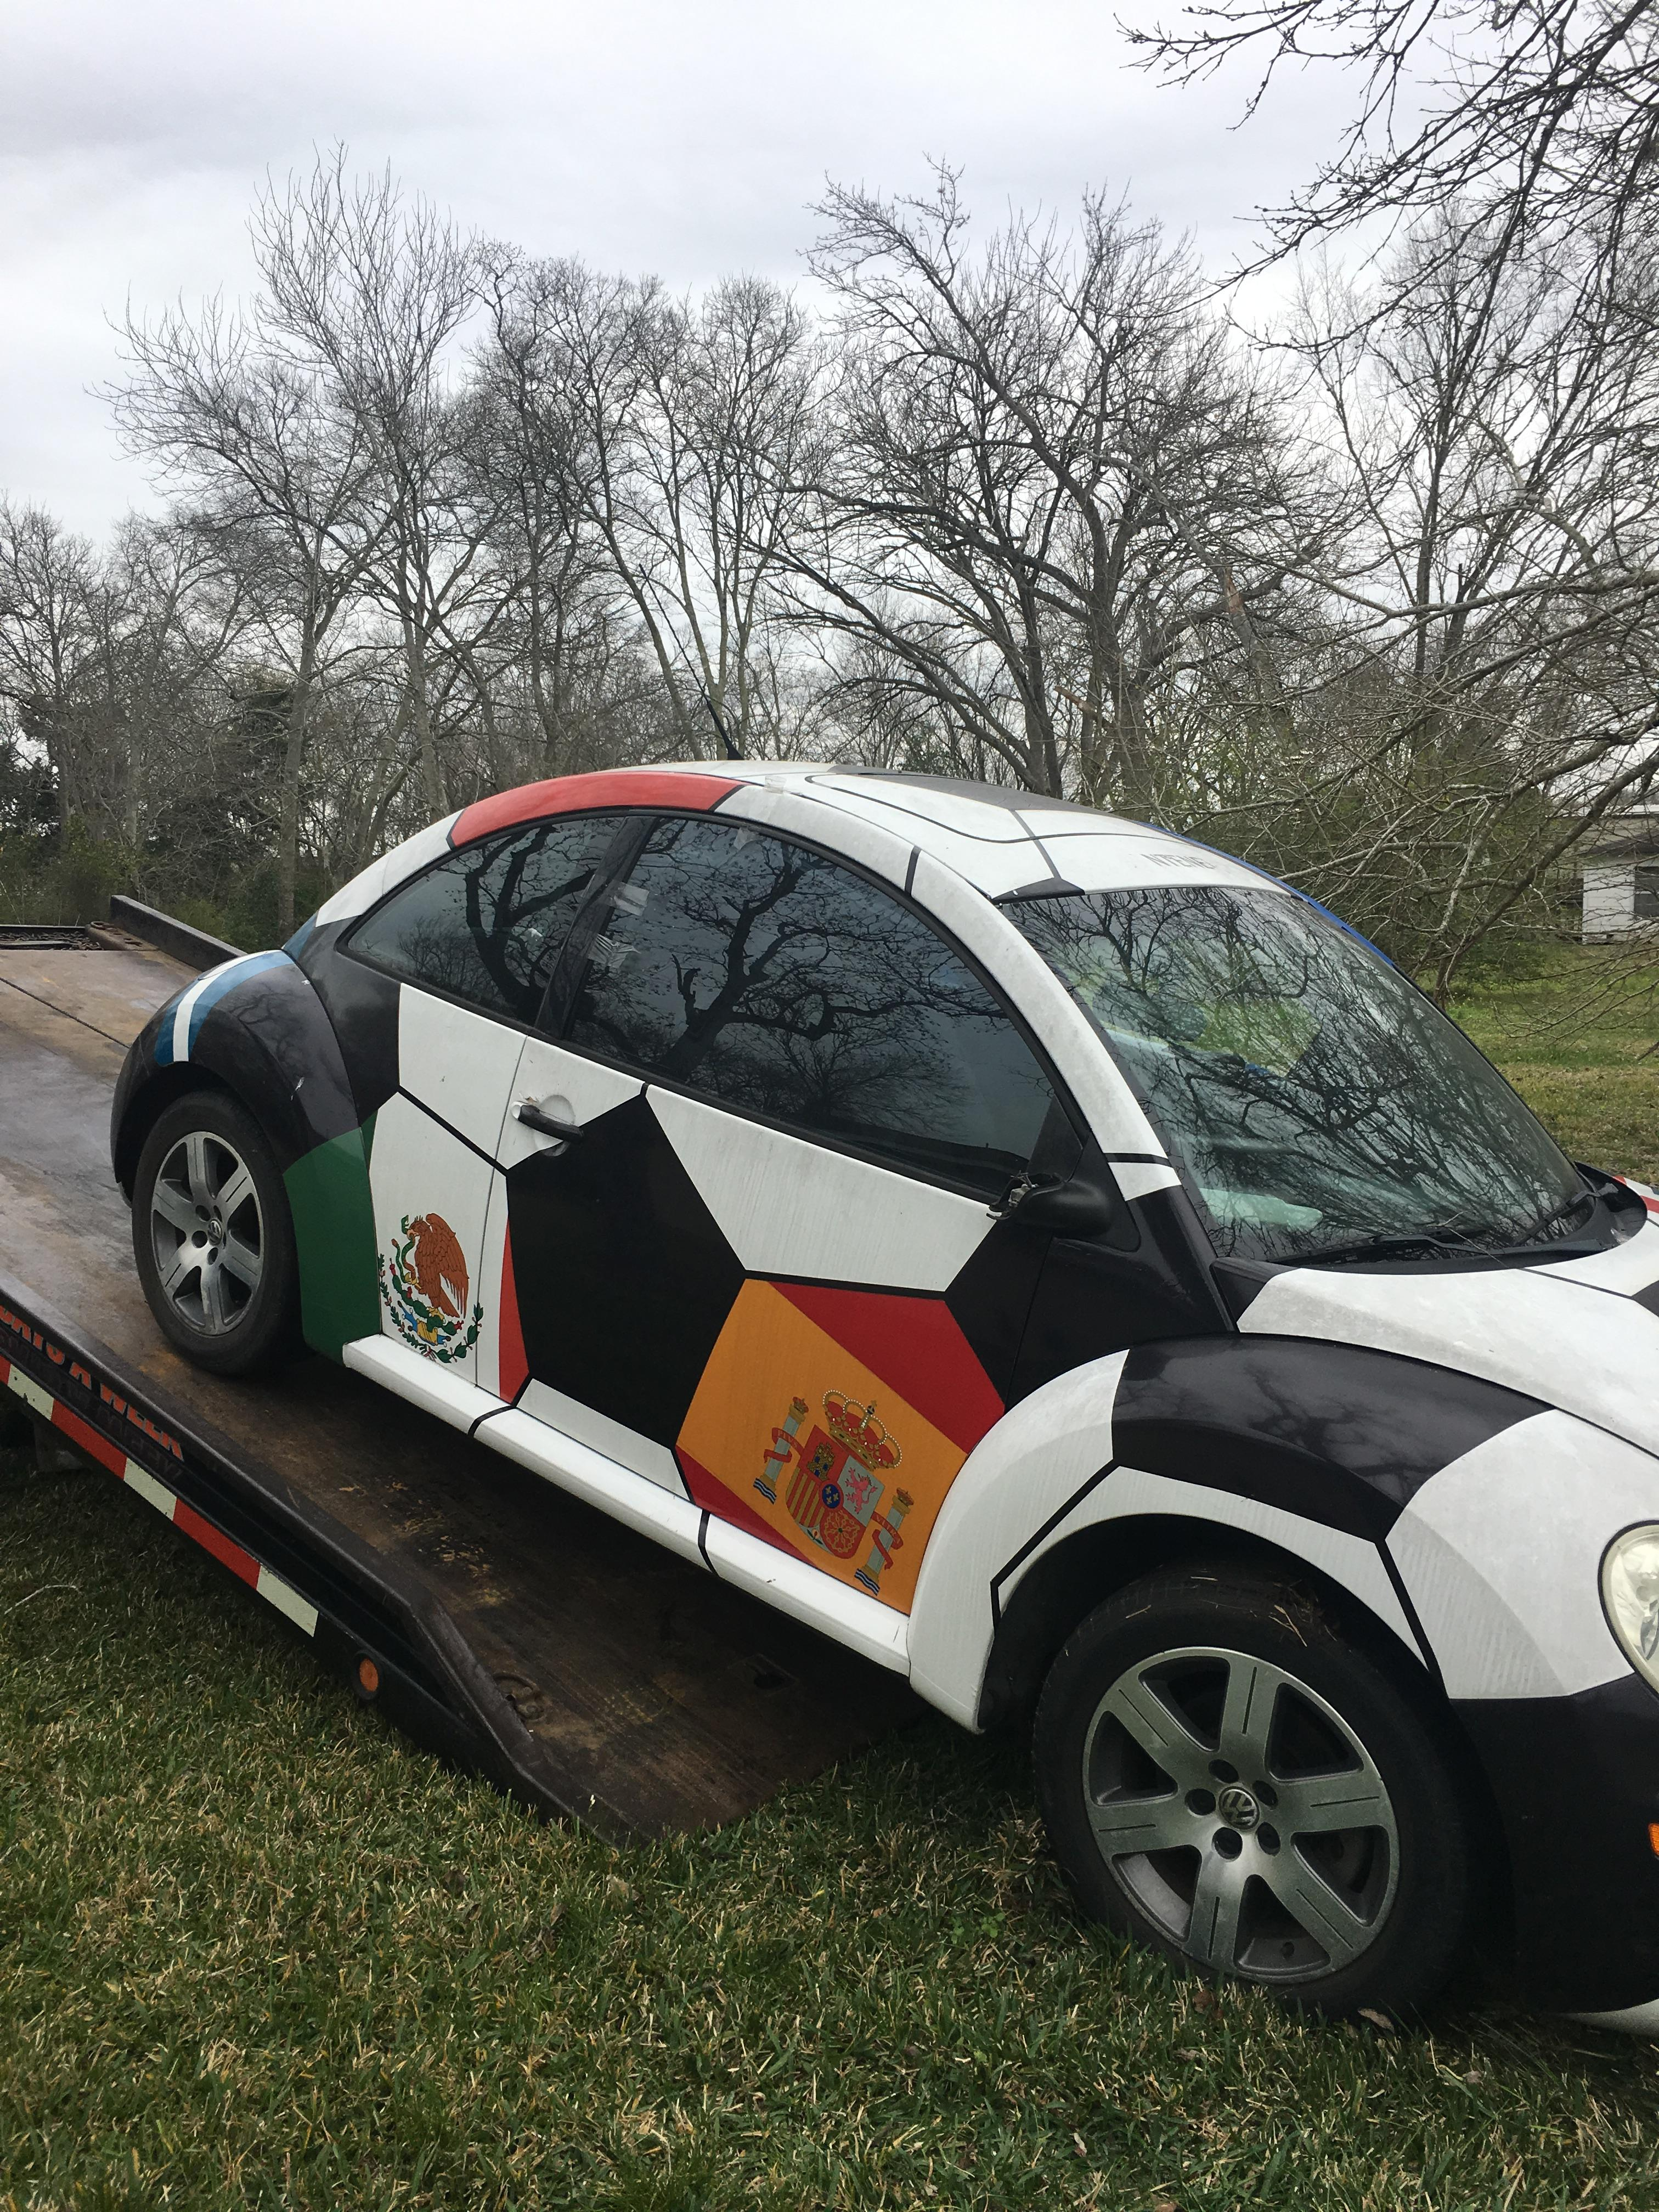 Cash For Cars & Junk Car Removal In Houston